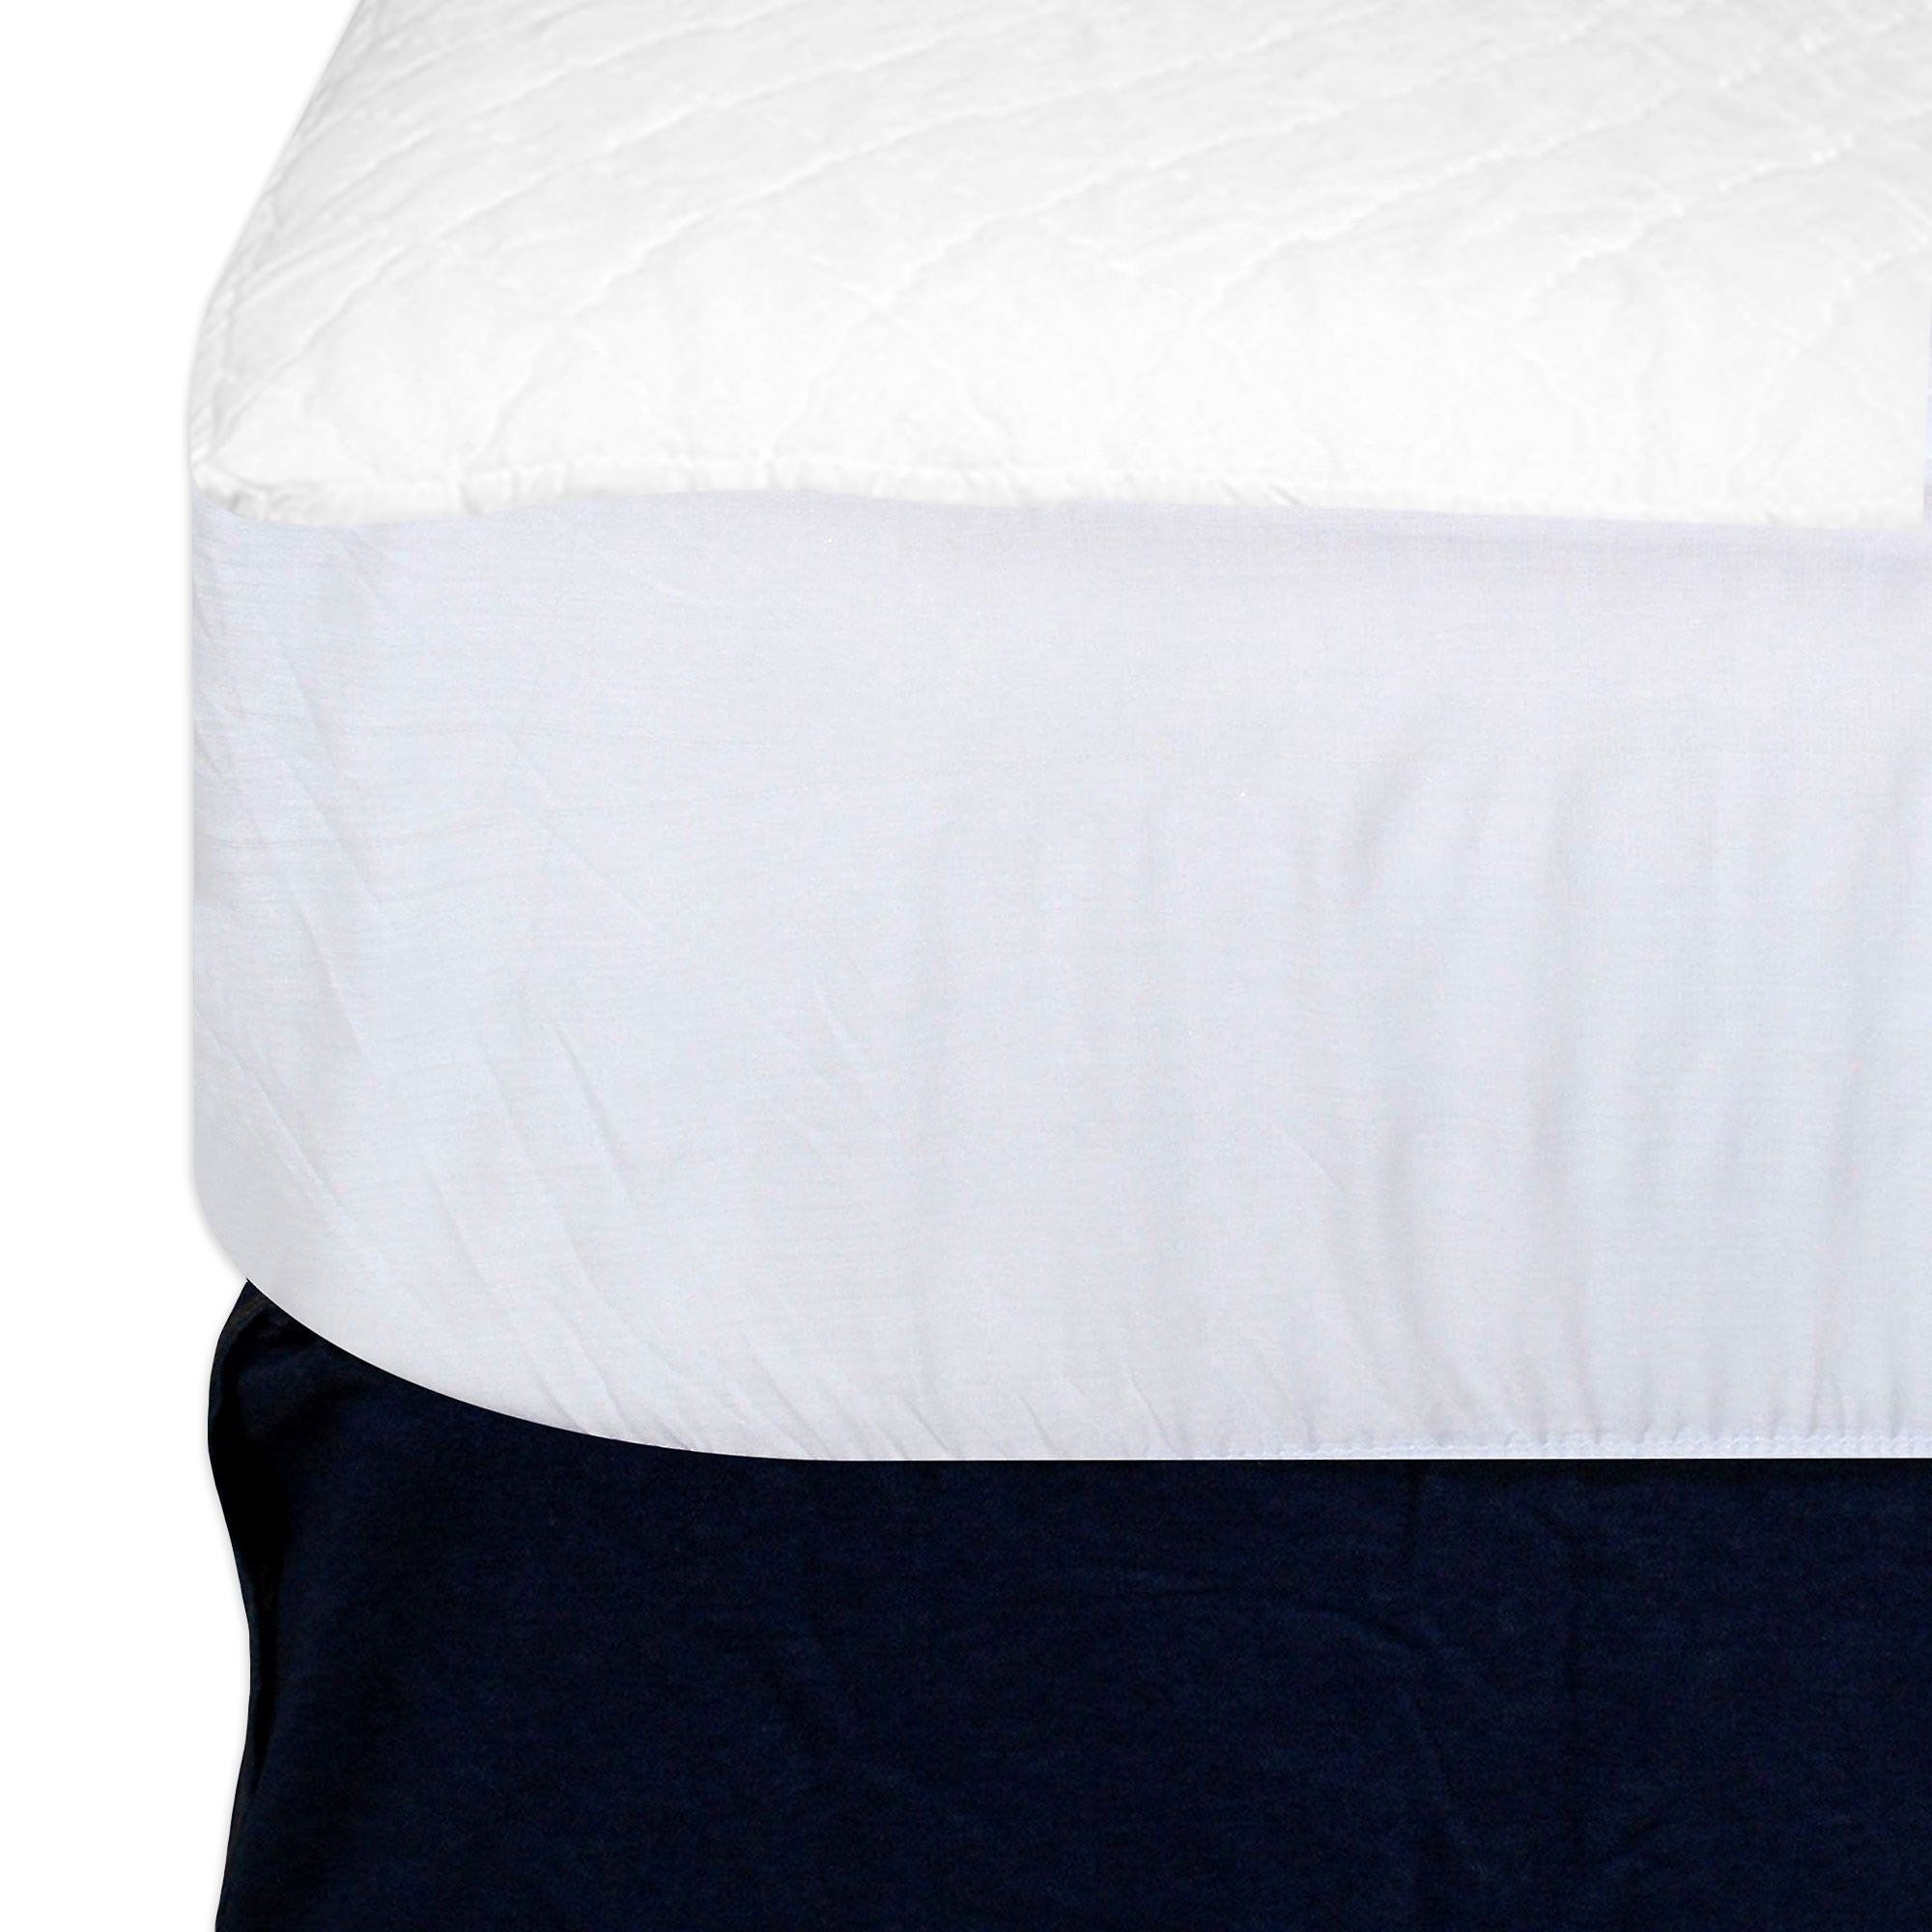 Bedding-Waterproof Mattress Pad